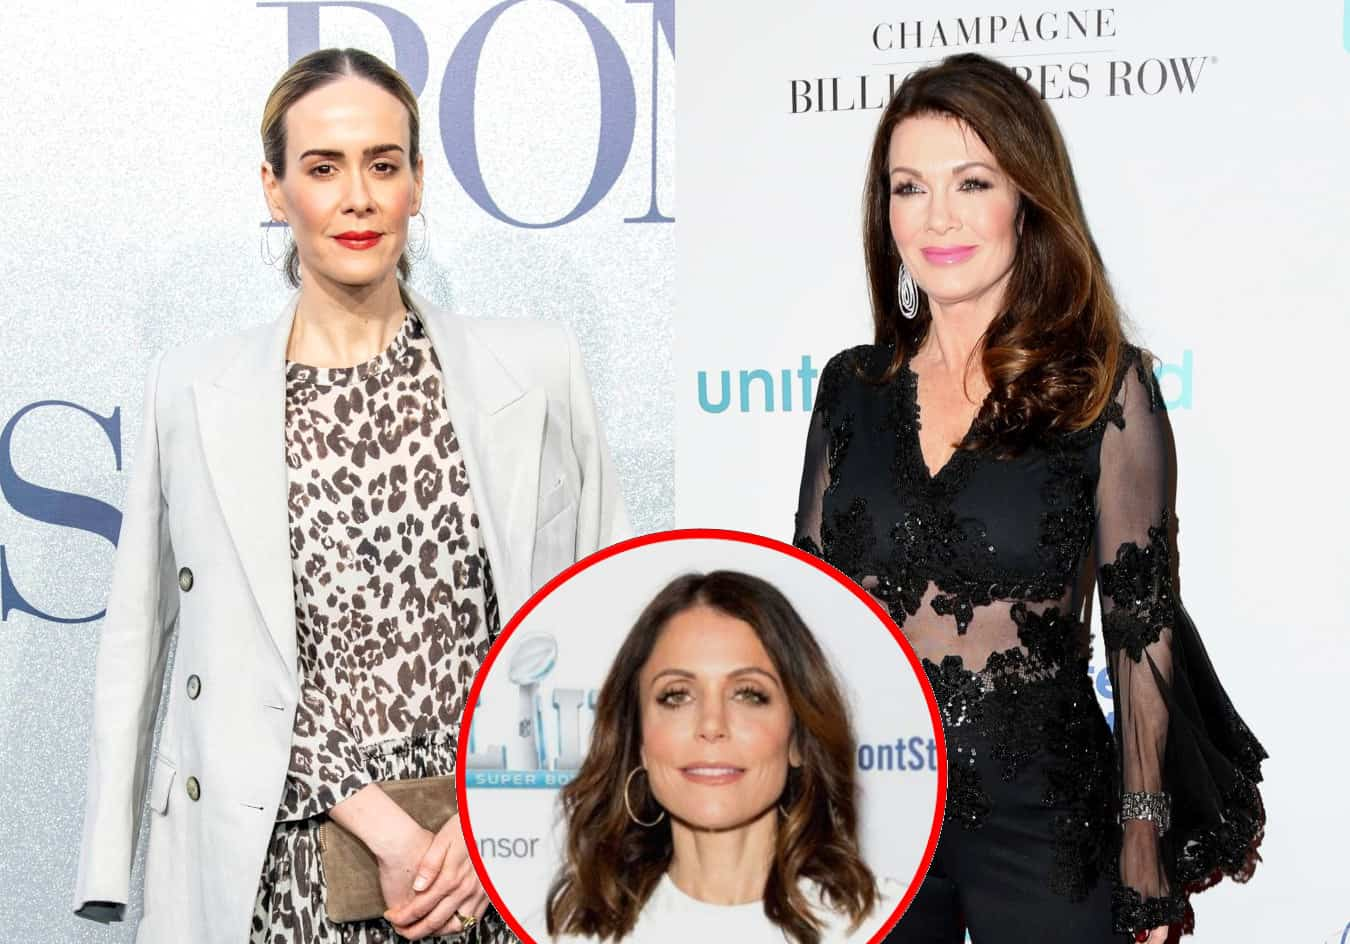 Actress Sarah Paulson Slams RHOBH's Lisa Vanderpump as 'Not Nice' and Talks Unpleasant Encounter With Her, Plus She Reveals if She Believes RHONY Will Survive Without Bethenny